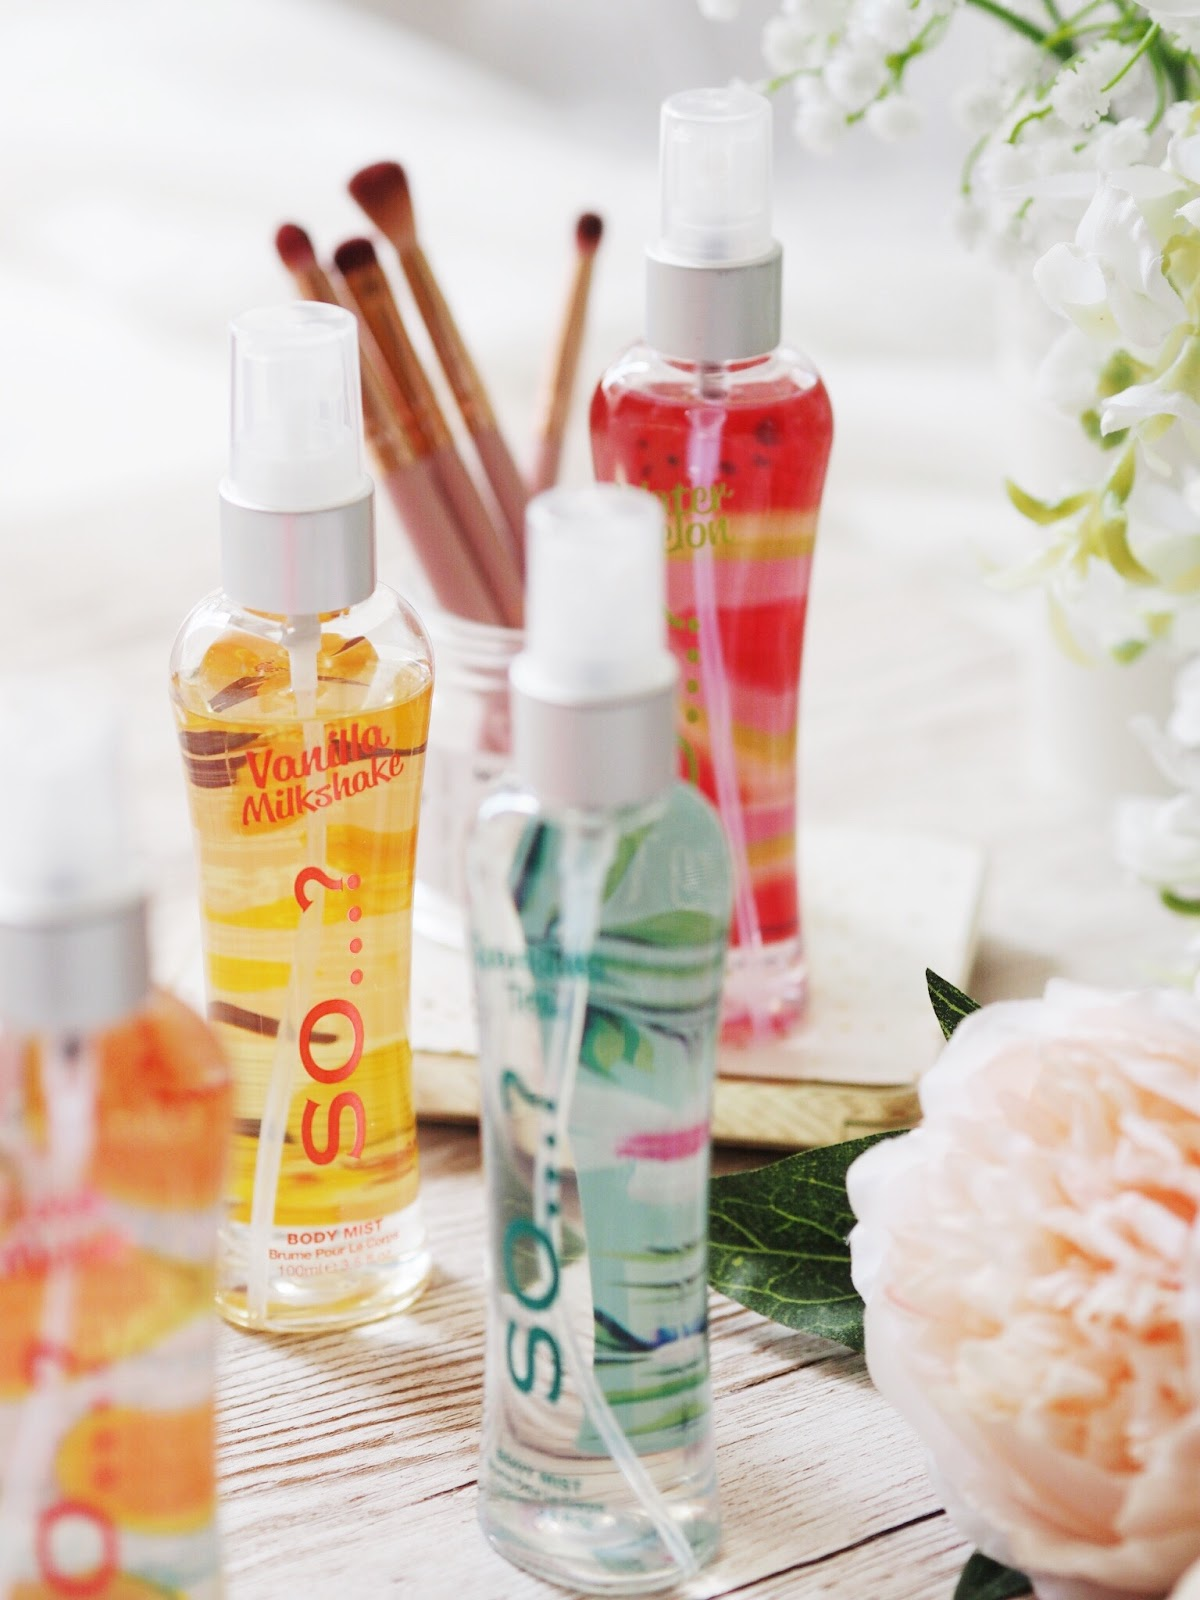 So fragrances summer body mists haves giveaway mariajblogs